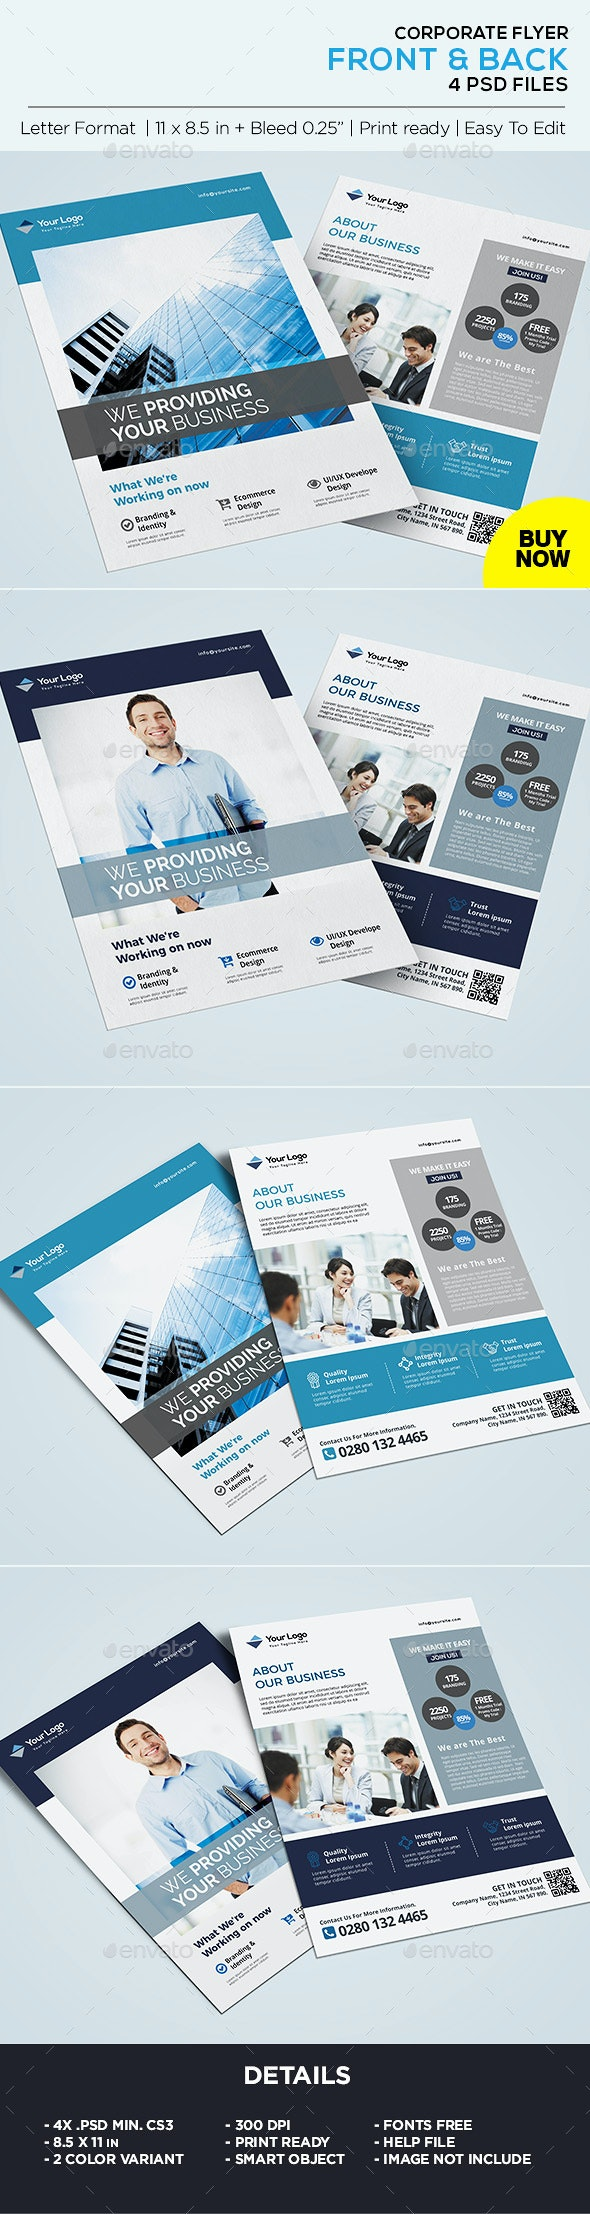 Corporate Flyer - Business Flyer Template - Corporate Flyers